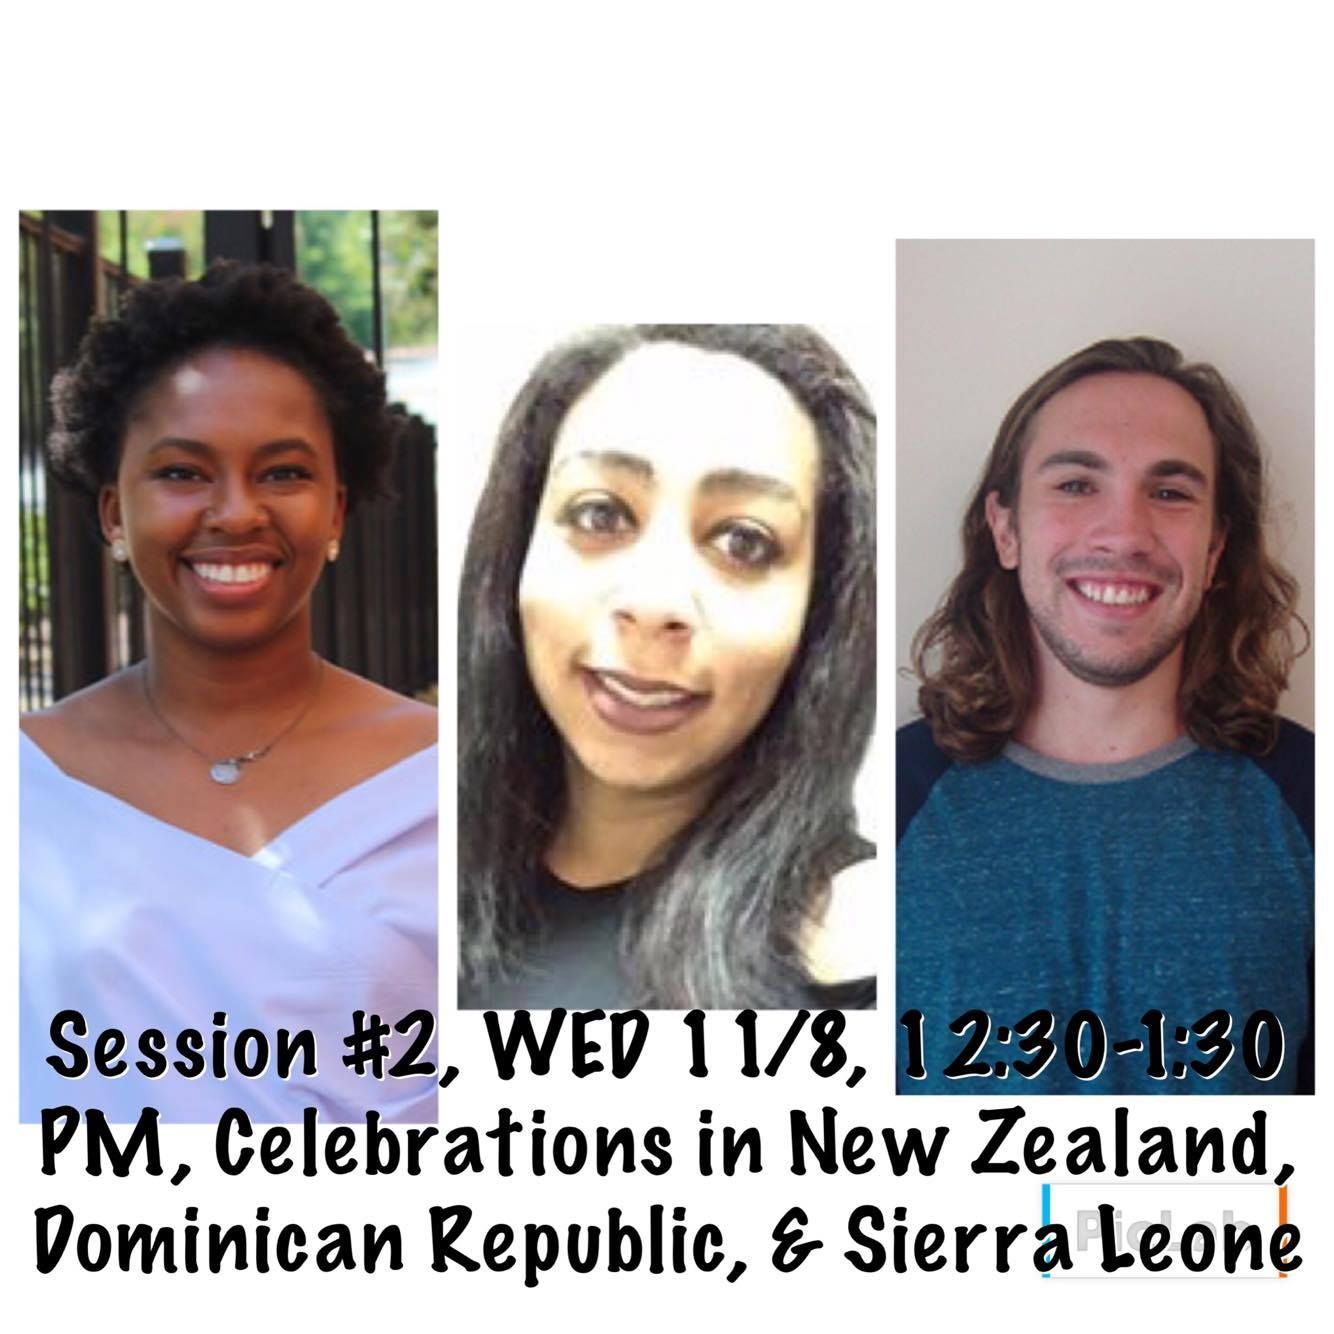 """Sign up for Virtual Cultural Festival SESSION 2:12:30-1:30 PM-""""Celebrations in New Zealand, Dominican Republic, and Sierra Leone""""! https://buff.ly/2z0GqdY?utm_content=buffer676c1&utm_medium=social&utm_source=pinterest.com&utm_campaign=buffer"""